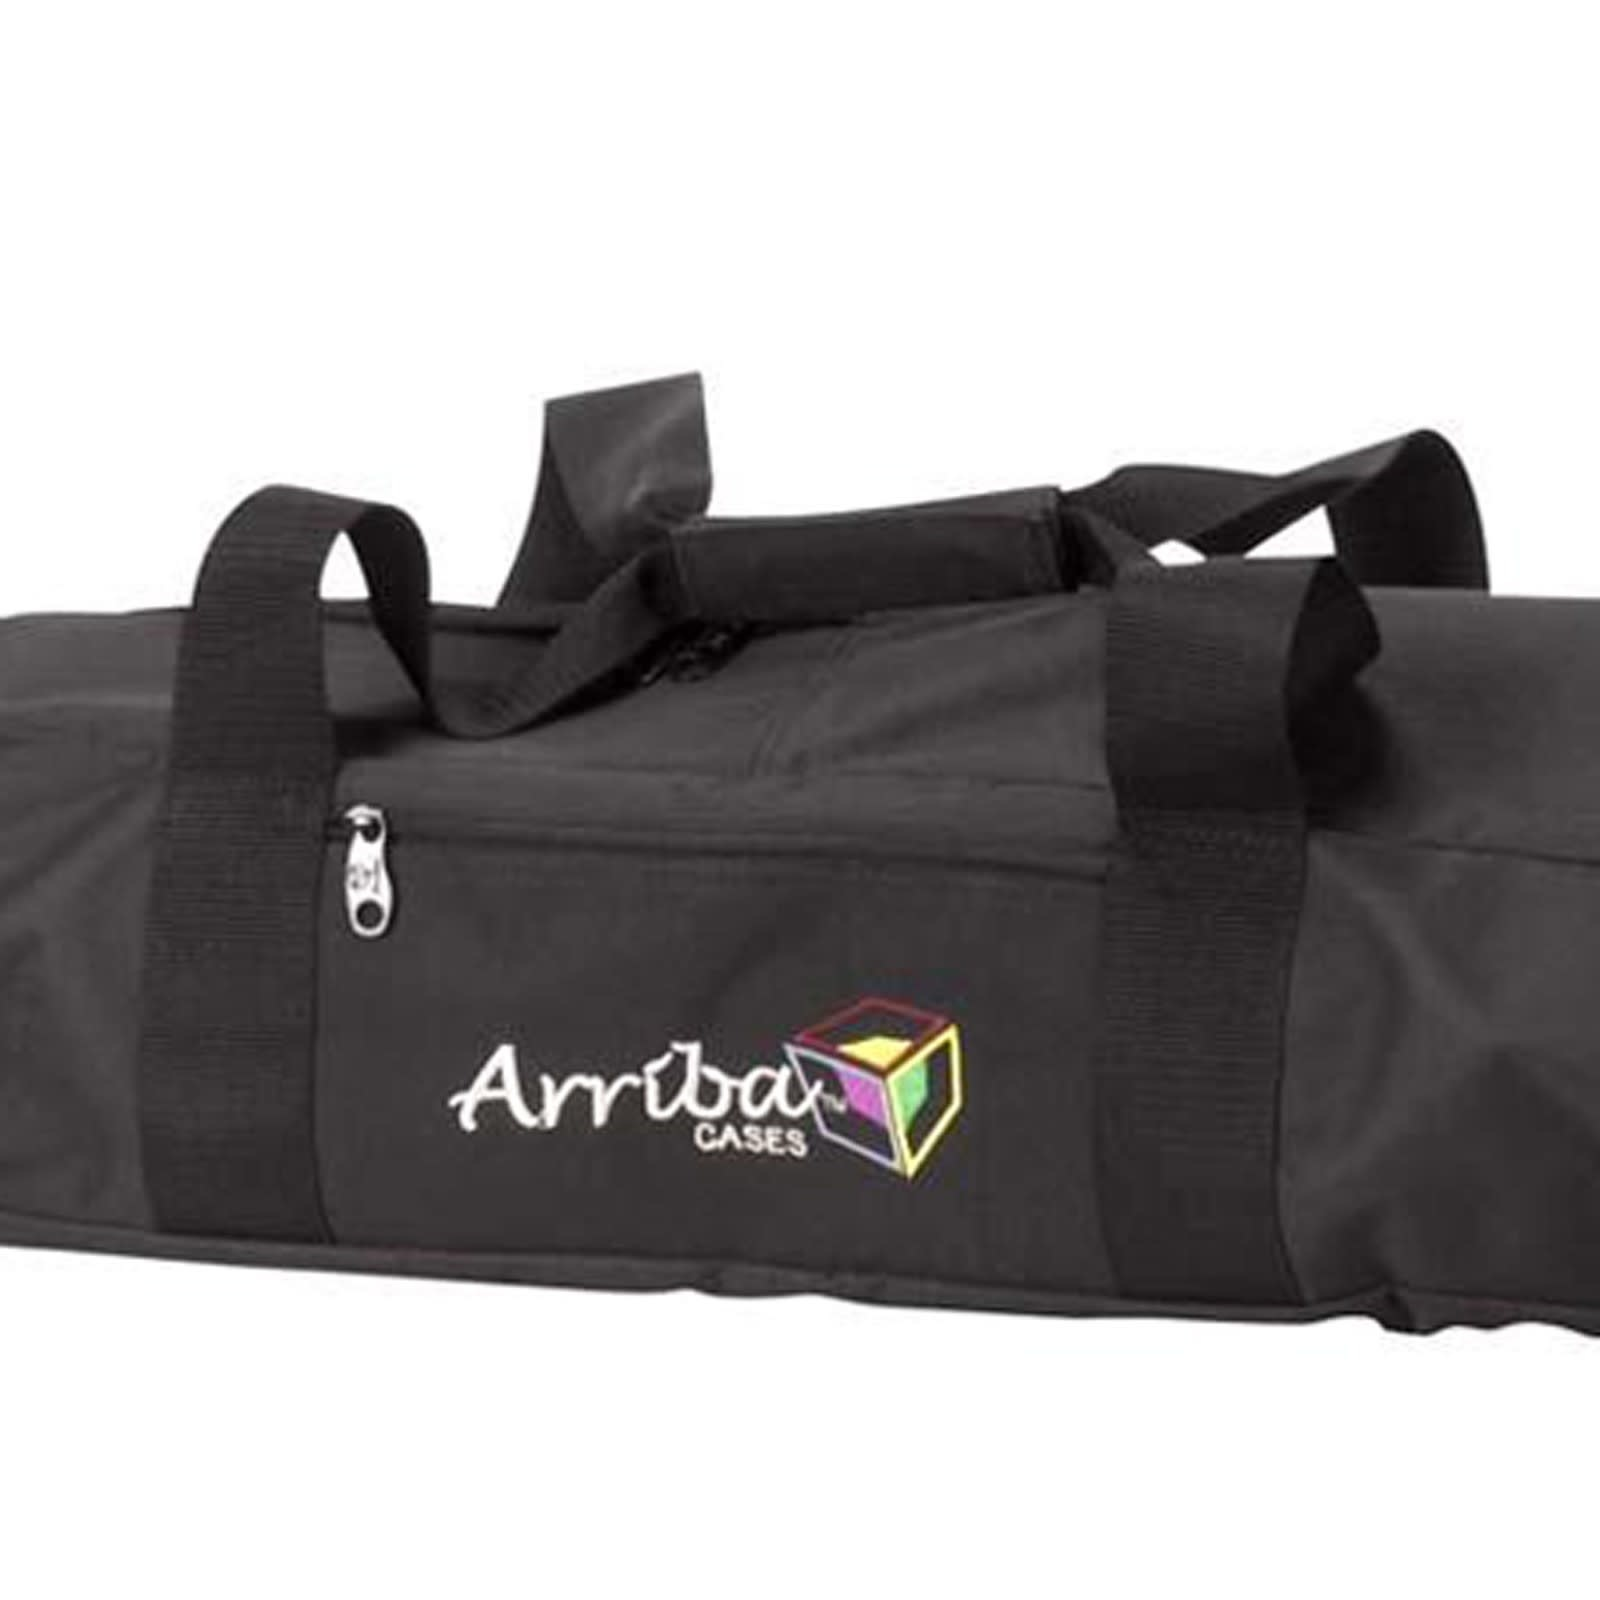 Arriba Cases AS-171 Deluxe Speaker Tripod Bag for 2 Tripods